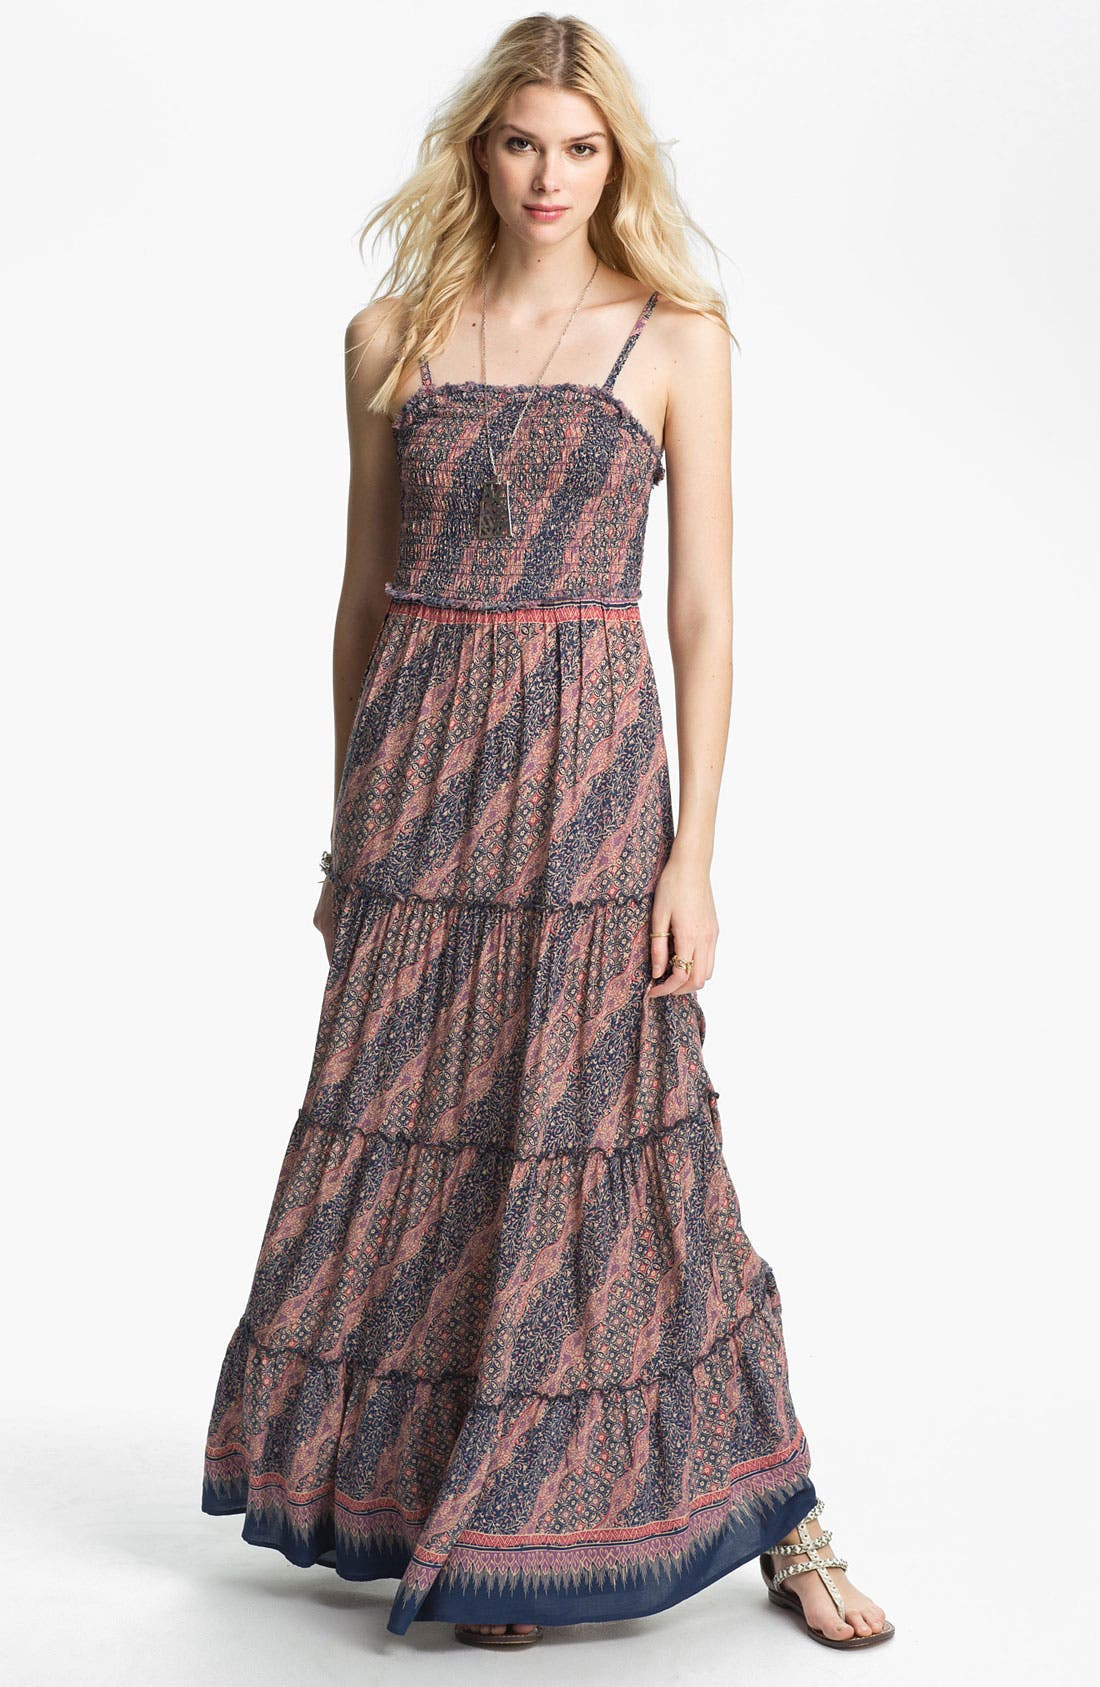 Alternate Image 1 Selected - Free People Vintage Print Tiered Maxi Dress